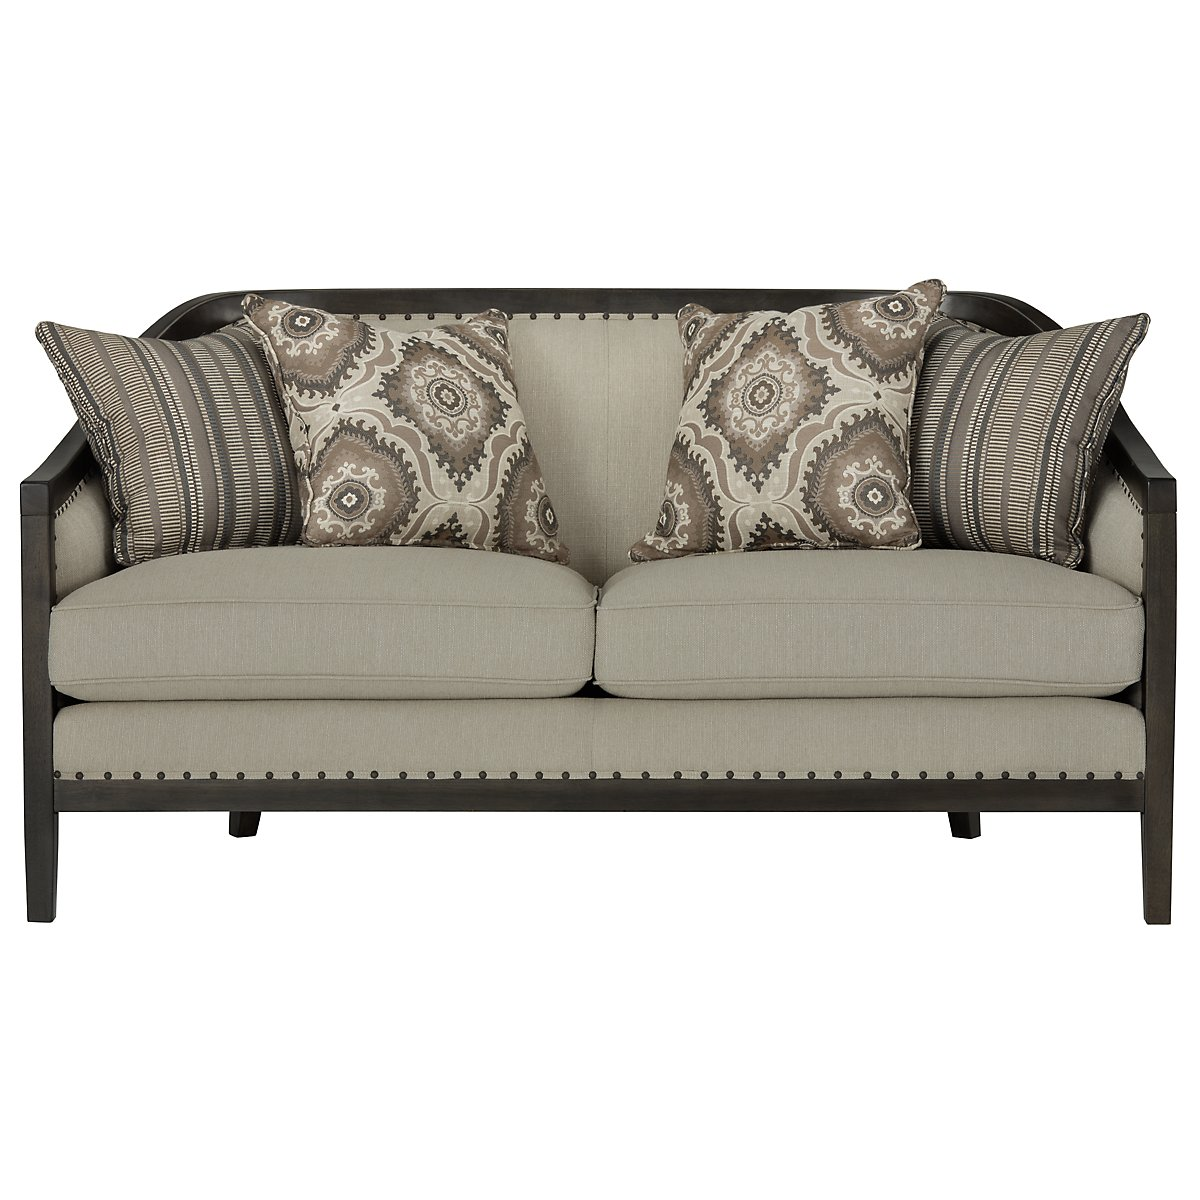 room furniture with sofa living loveseat itm cushion fabric linen couch gray modern